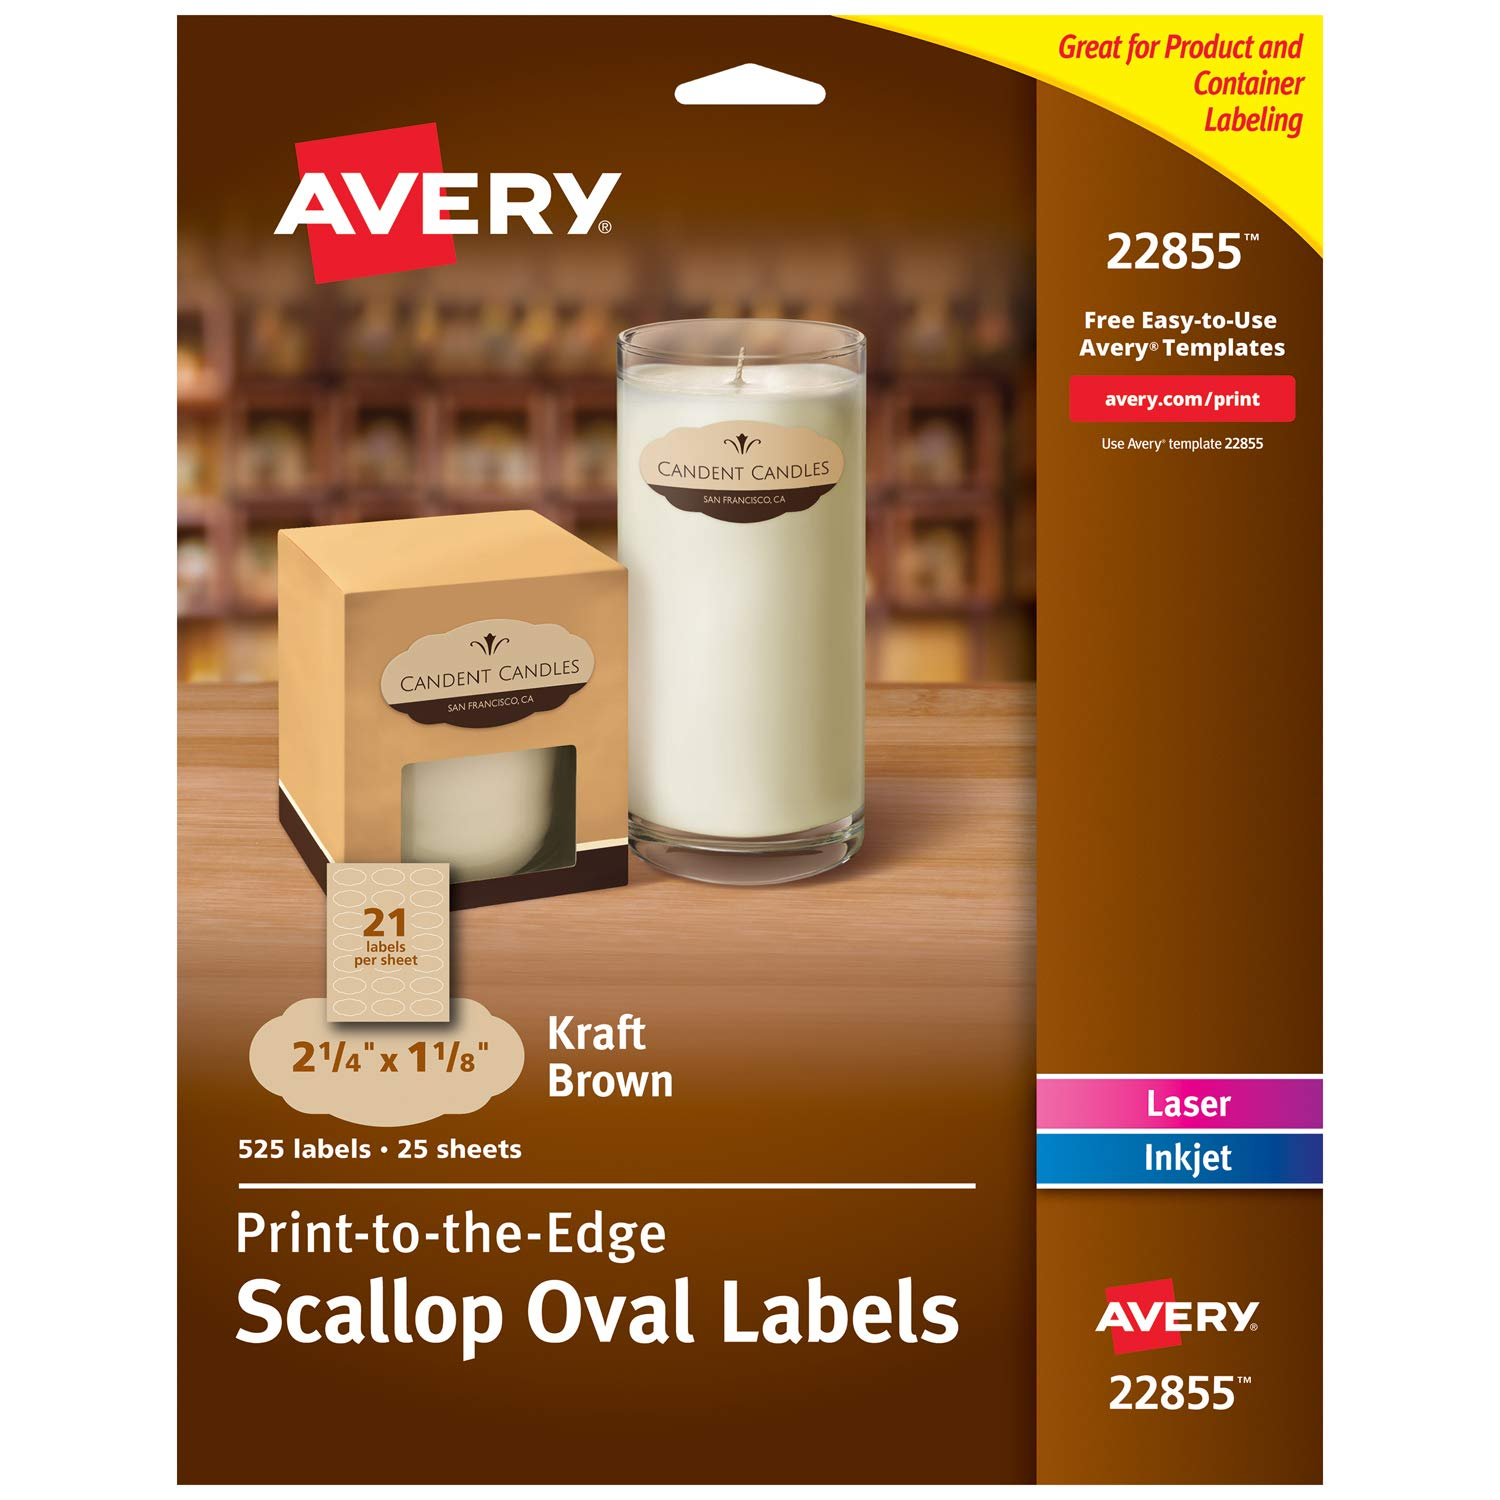 """Avery Scallop Oval Labels for Laser & Inkjet Printers, 2-1/4"""" x 1-1/8"""", 525 Kraft Brown Labels (22855)"""